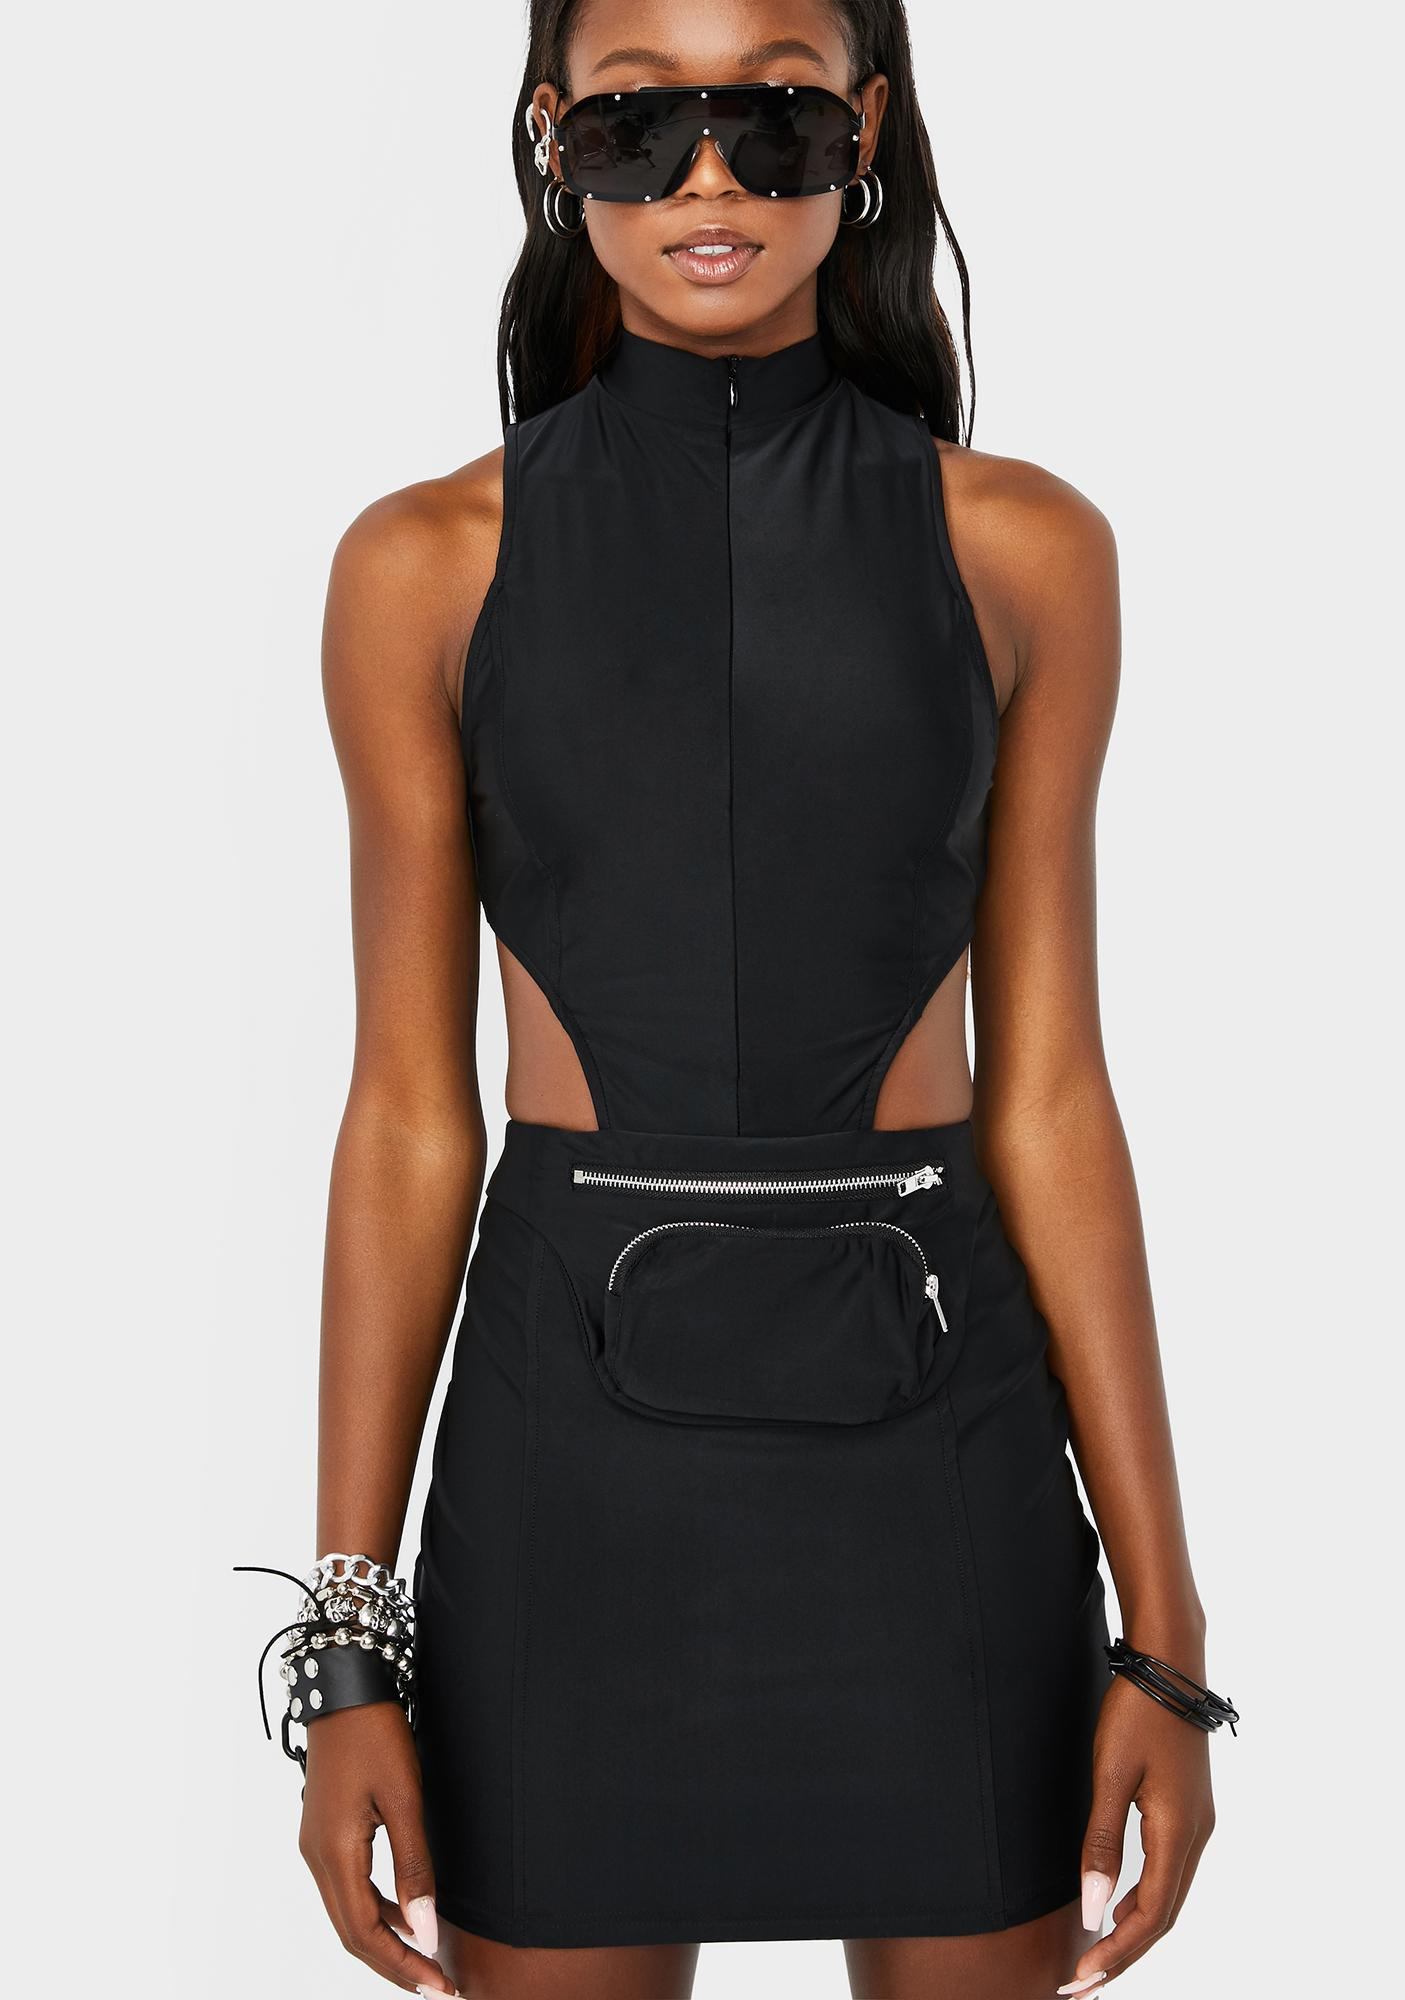 No Negotiation Fanny Pack Dress